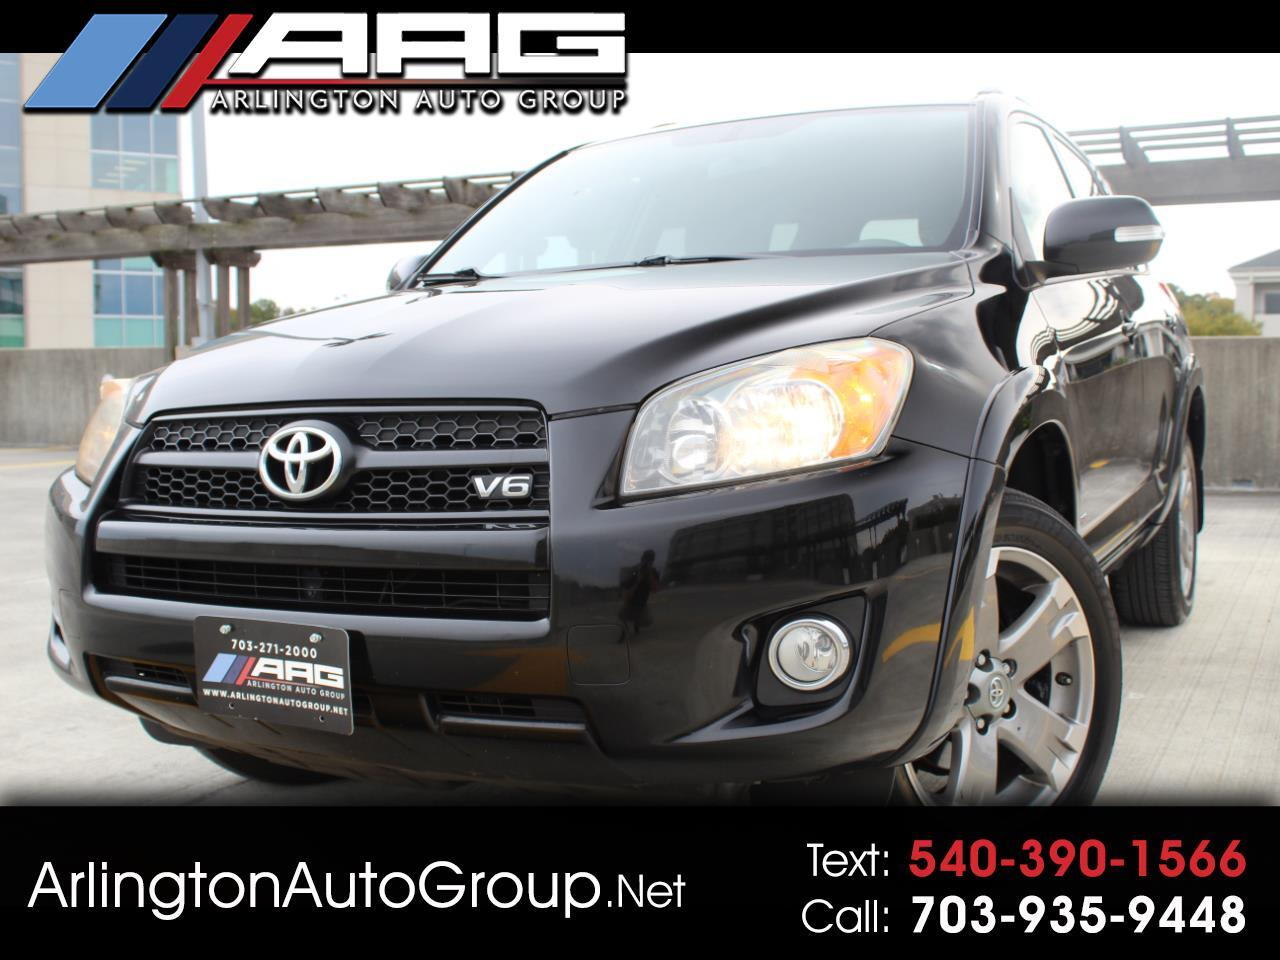 2011 Toyota RAV4 4WD 4dr V6 5-Spd AT Sport (Natl)